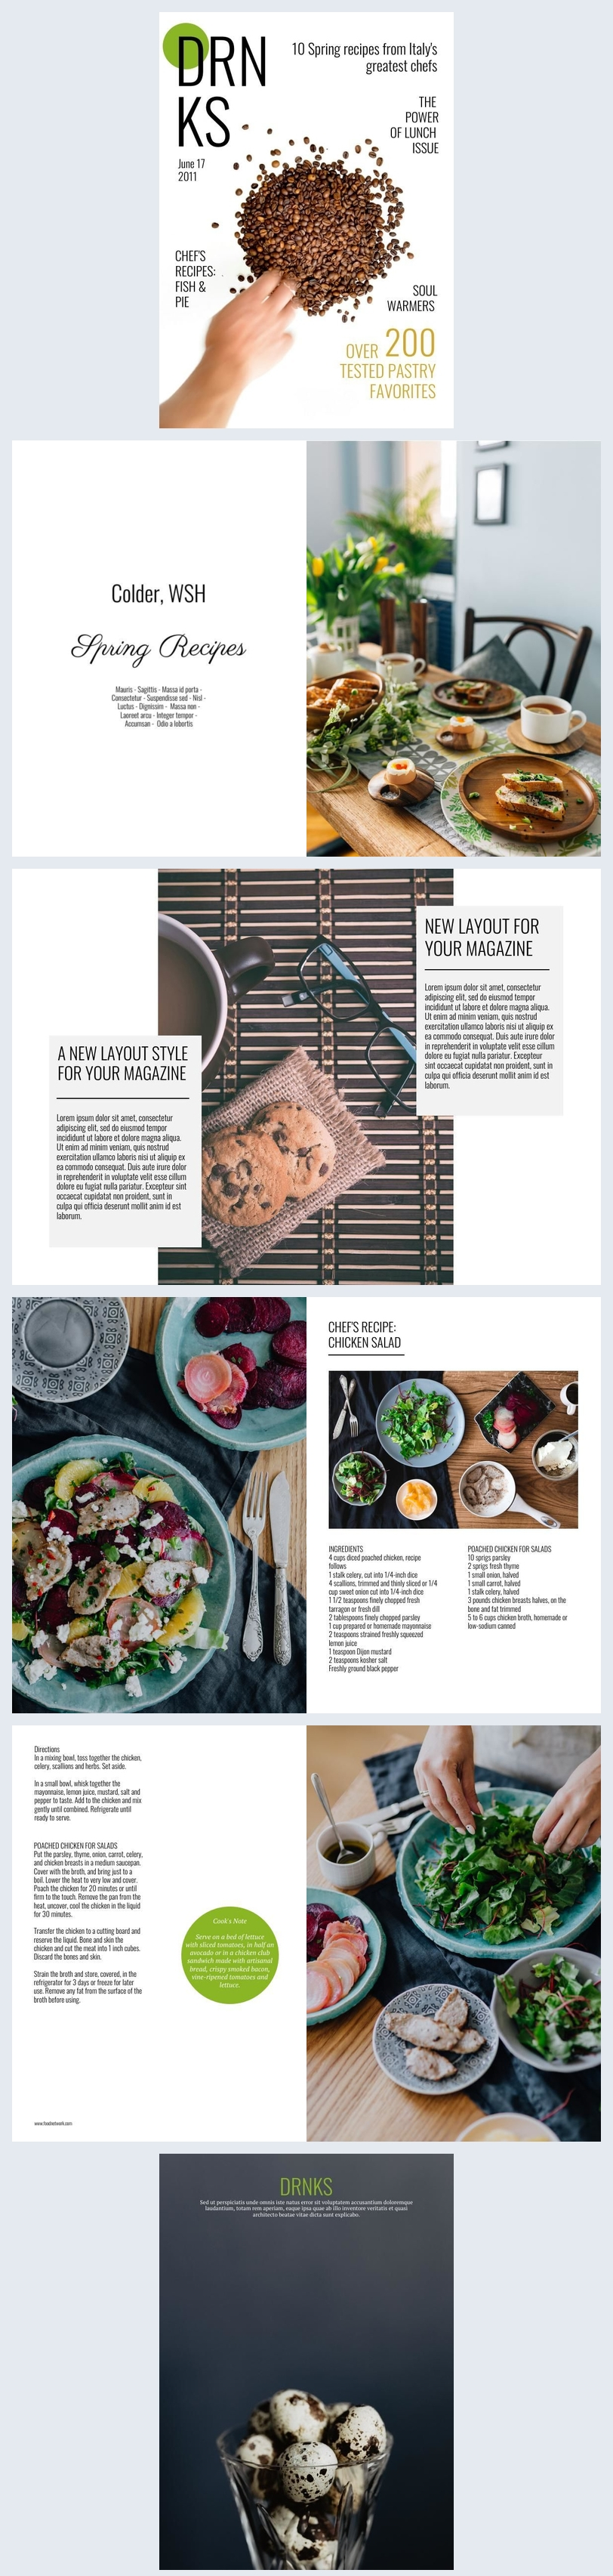 Food Magazine Design